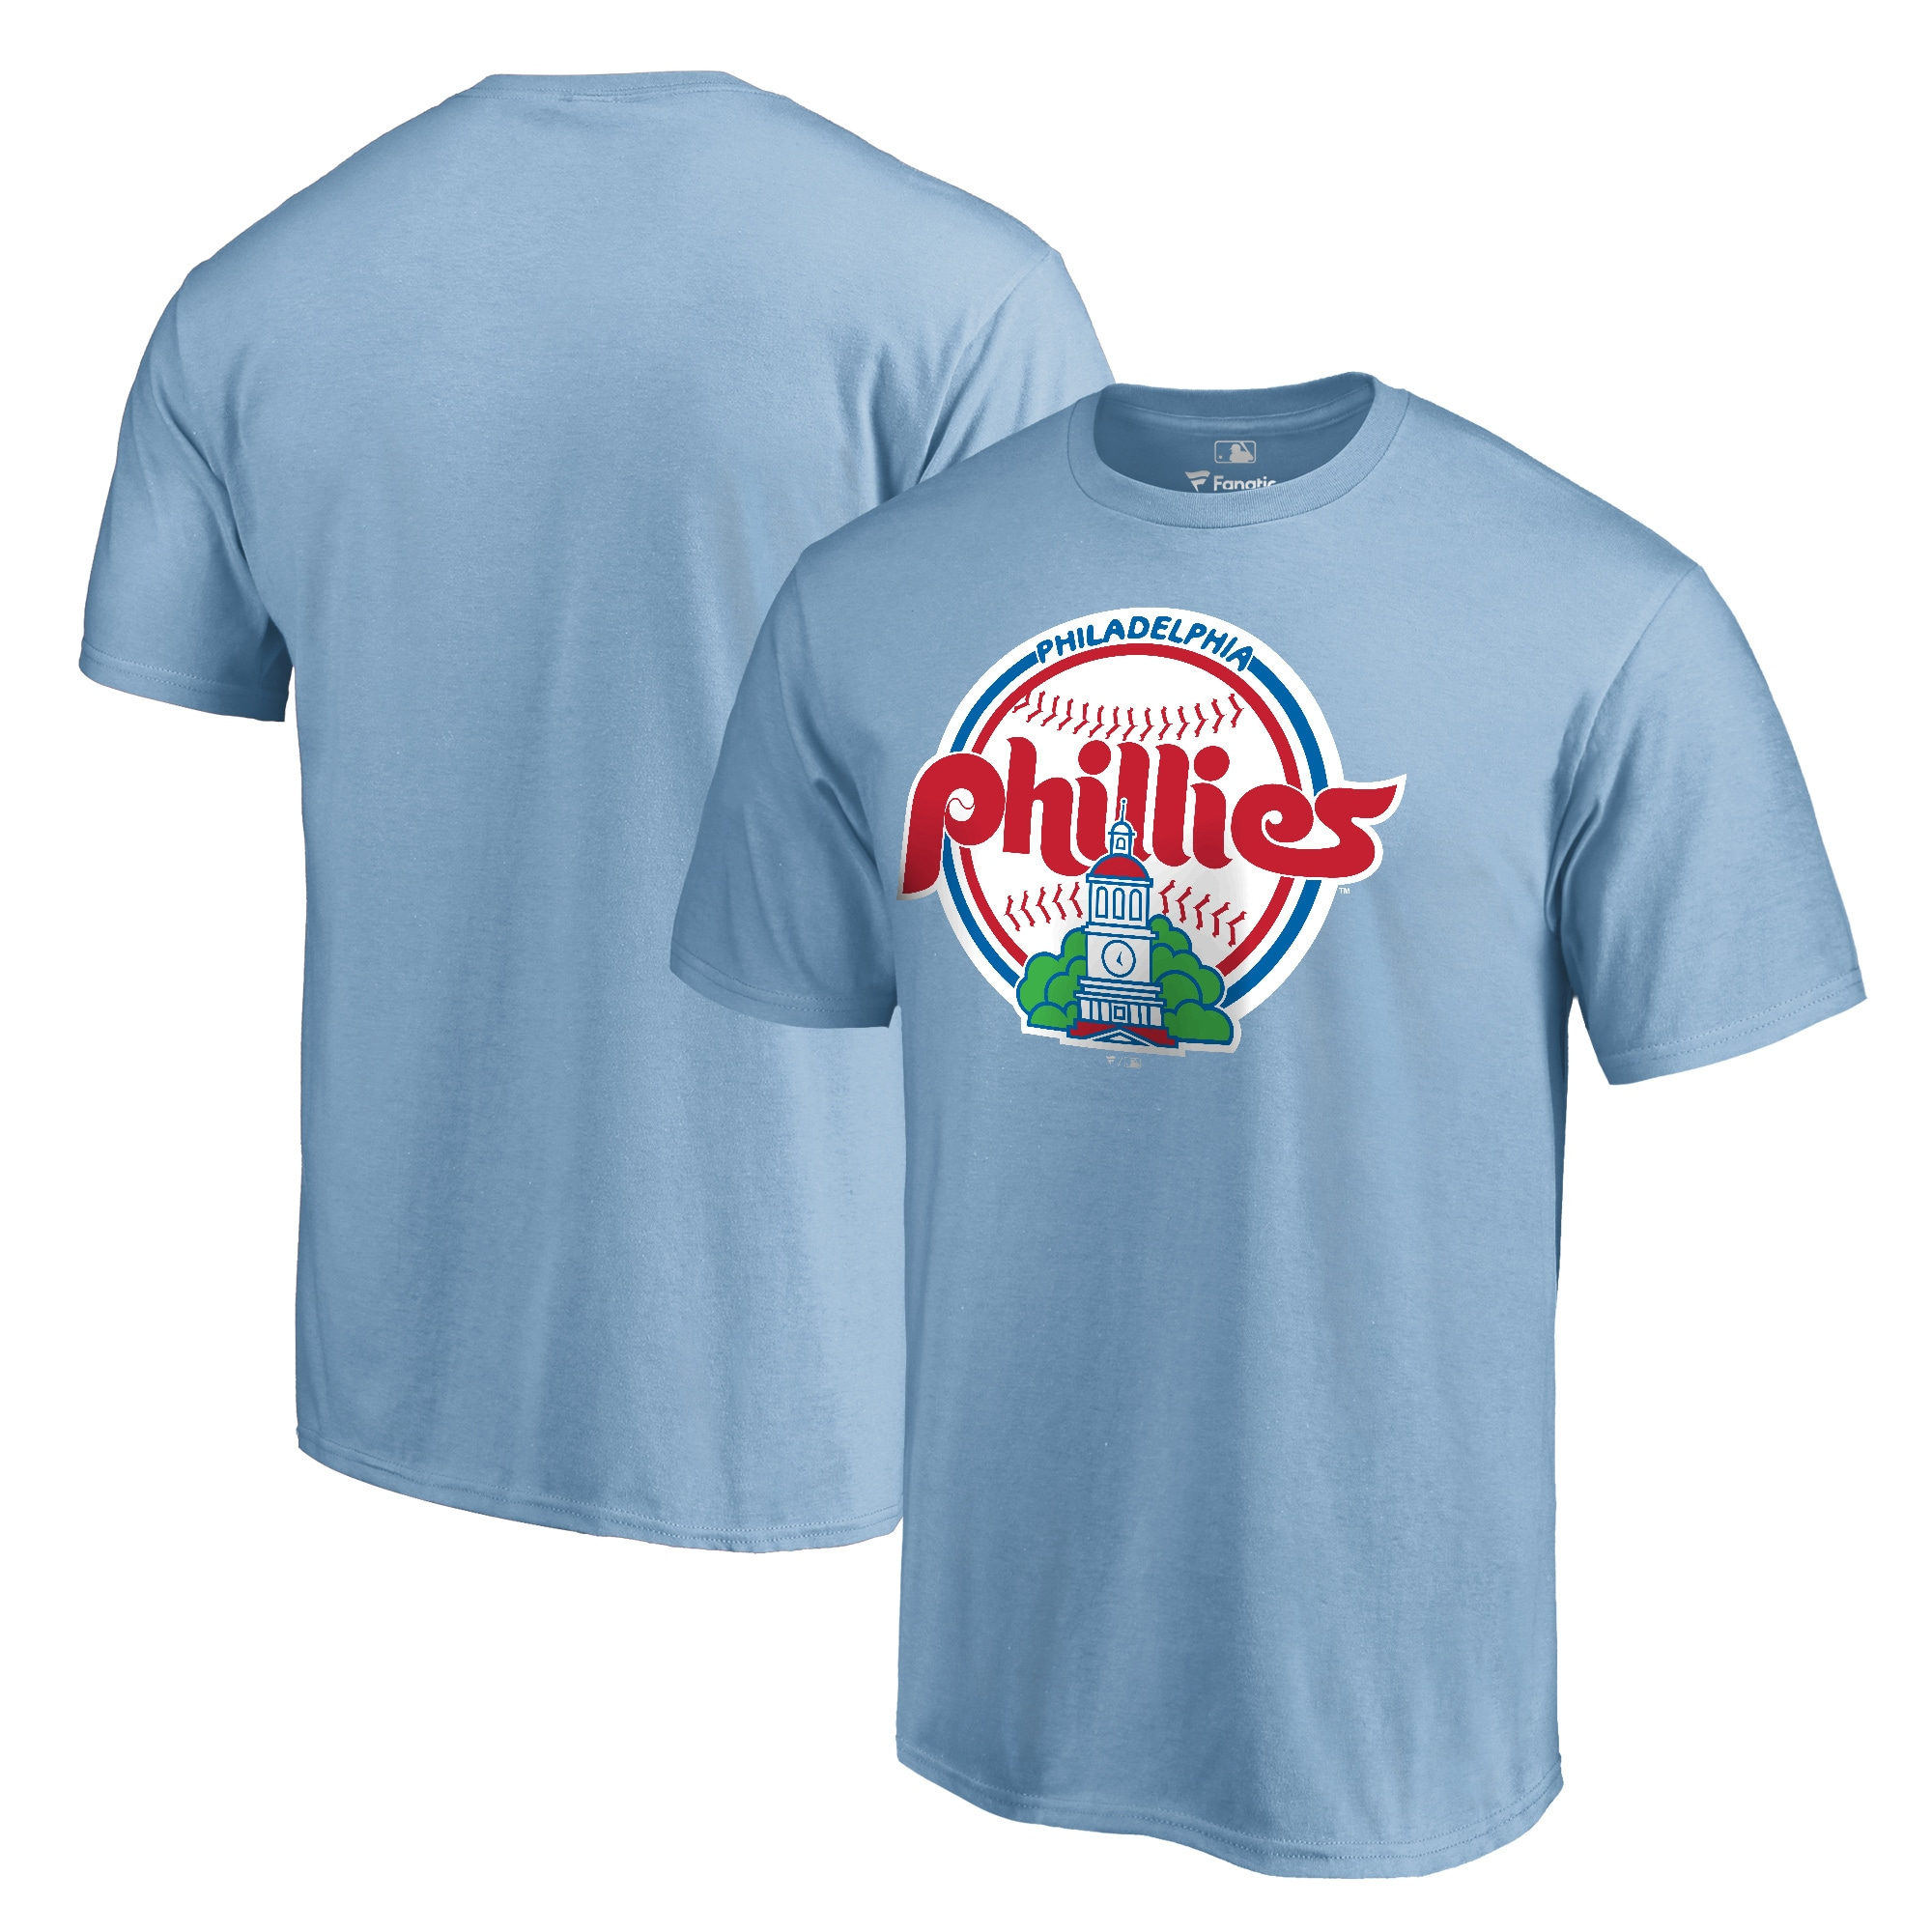 Philadelphia Phillies Fanatics Branded Cooperstown Collection Forbes T-Shirt - Light Blue